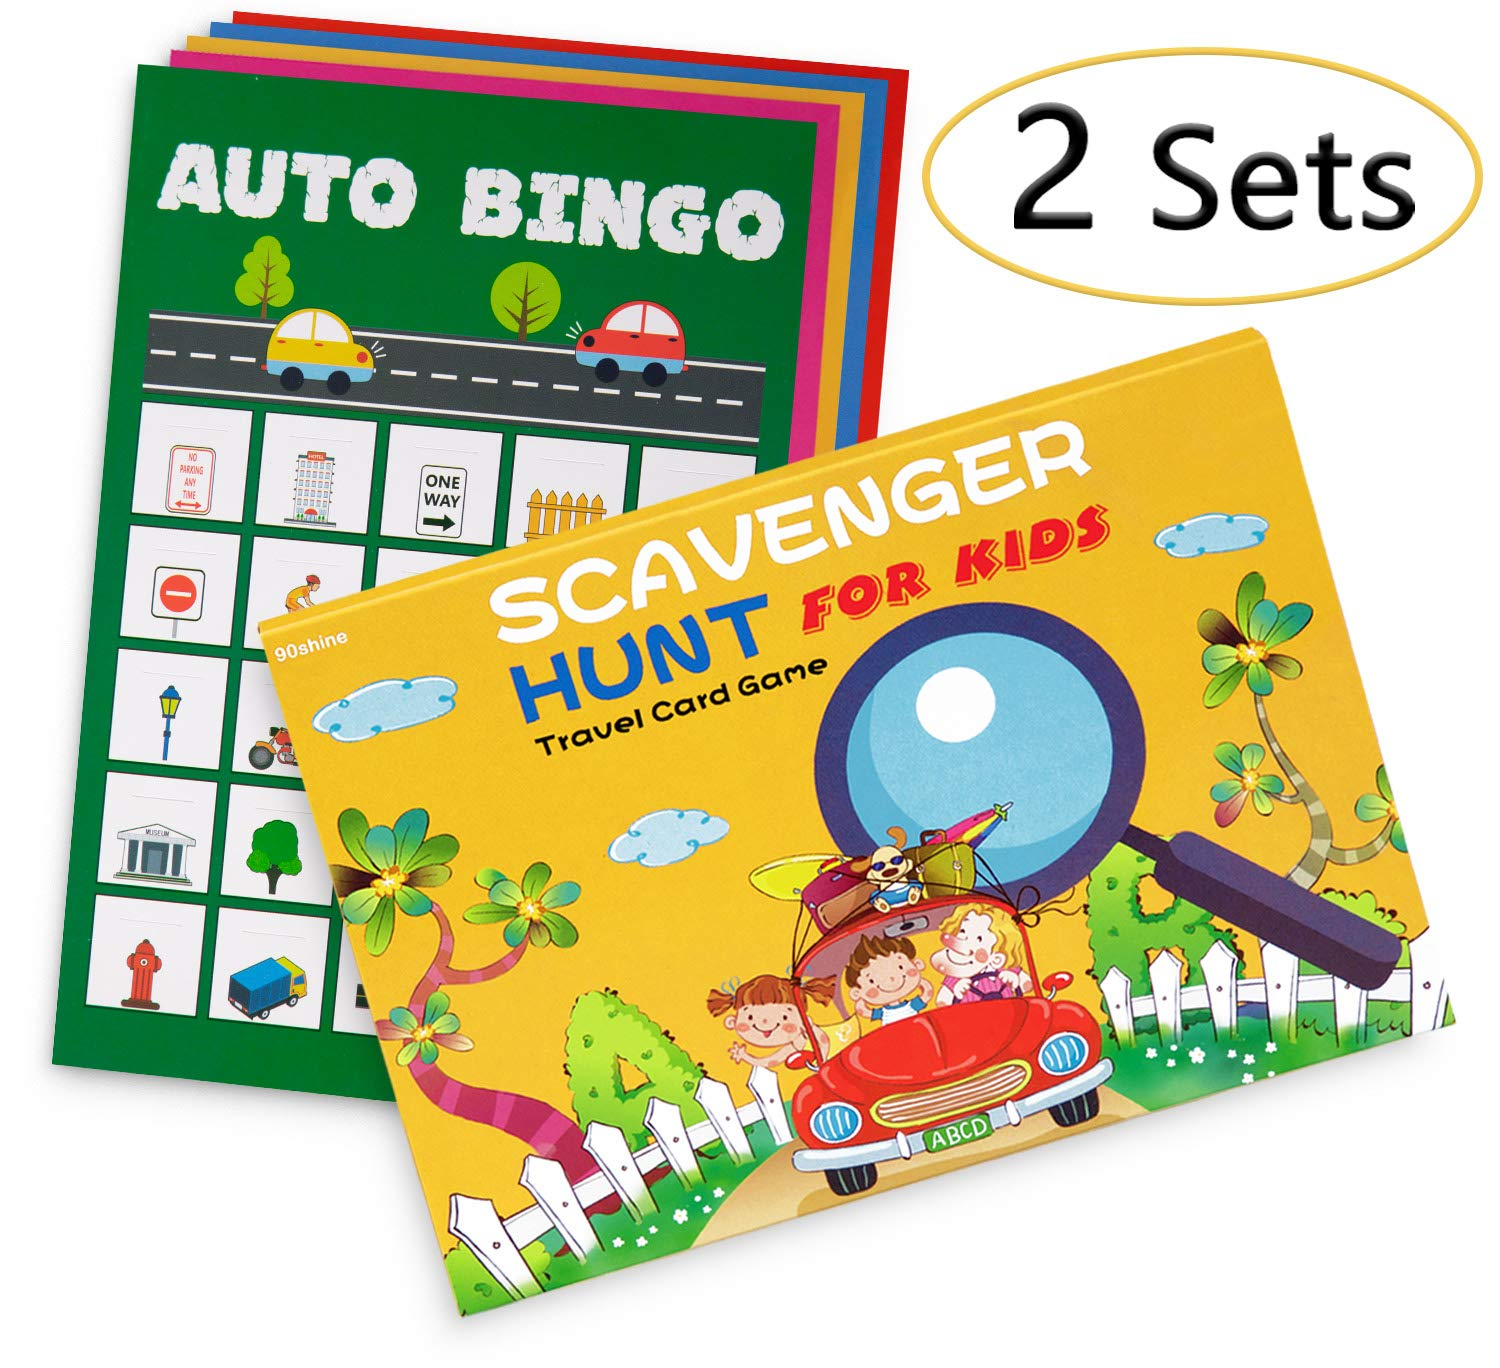 2 Sets Road Trip Card Games - Travel Scavenger Hunt and Auto Bingo - Fun for Kids Families by 90shine